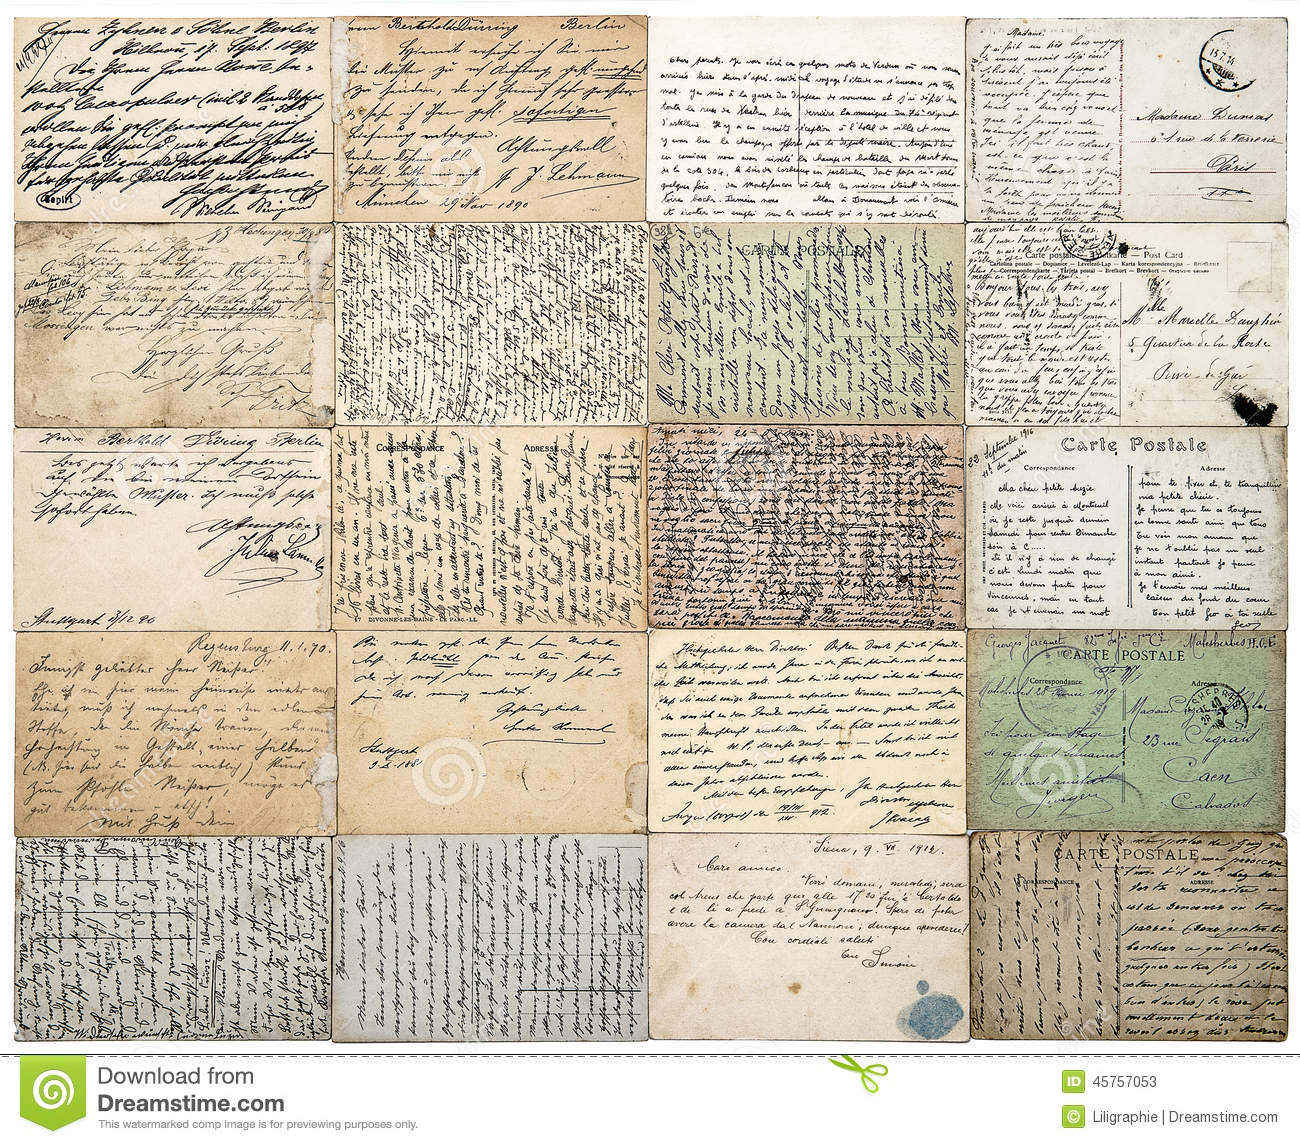 Antique Postcards. Old Handwritten Undefined Texts. French